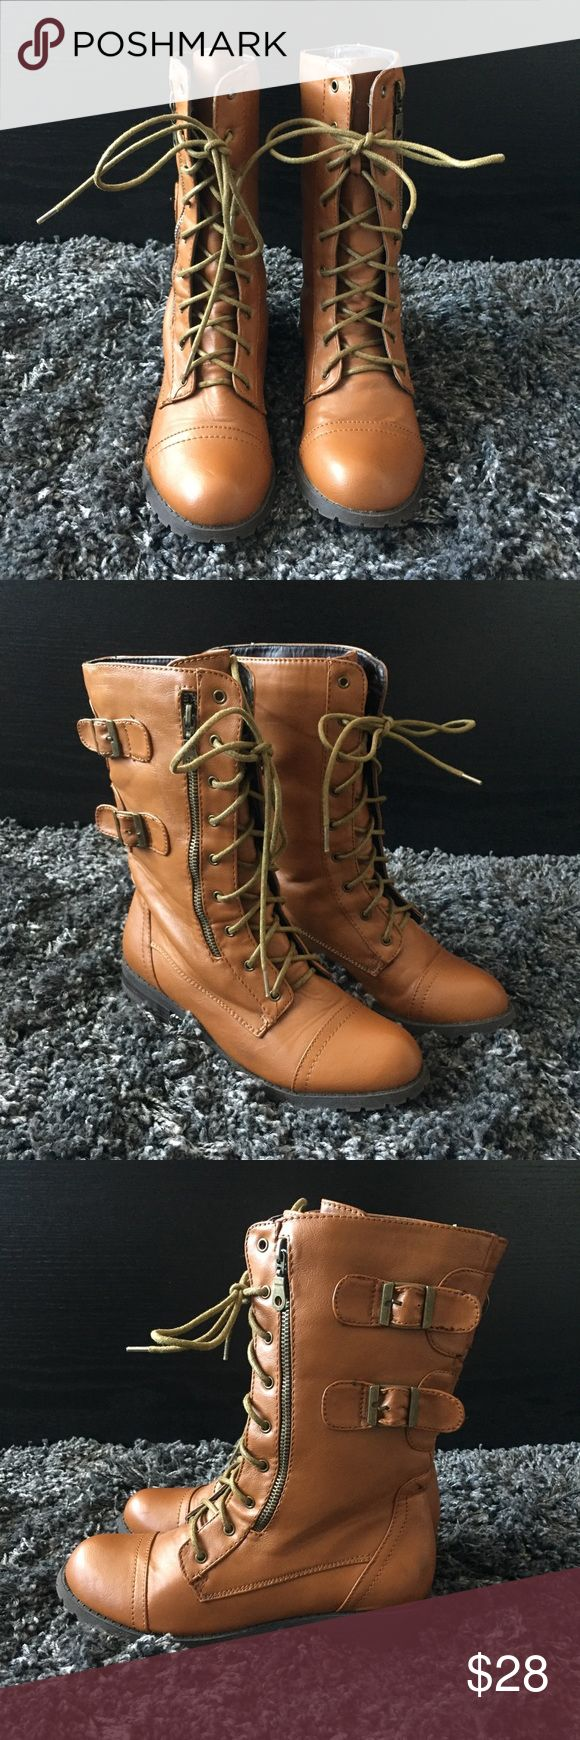 Cognac Brown Zipper Detail Combat Boots Cognac brown combat boots with zipper and buckle detail. BRAND NEW, NEVER WORN OUTSIDE OF STORE! Some slight crease in side of leather from being tried on as pictured. Pairs perfectly with leggings or your favorite pair of jeans! 🖤 Shoes Combat & Moto Boots